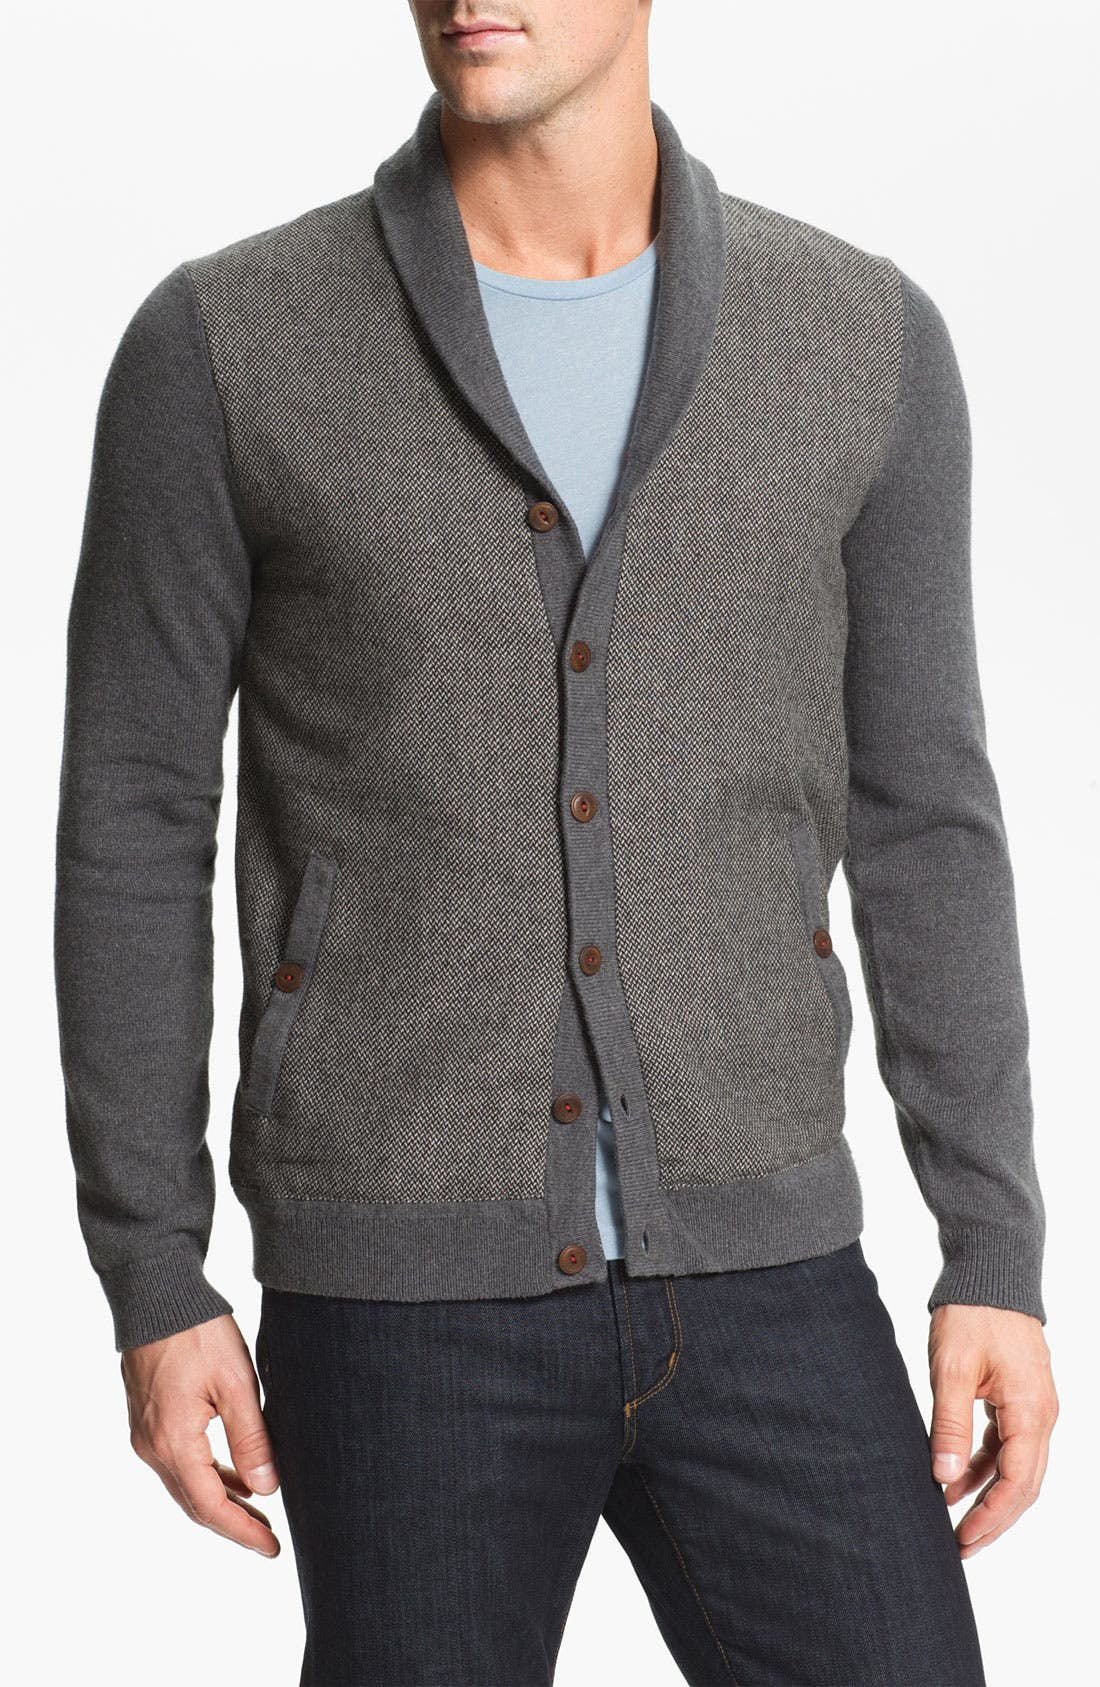 Main Image - Ted Baker London 'Bosport' Shawl Collar Button Cardigan